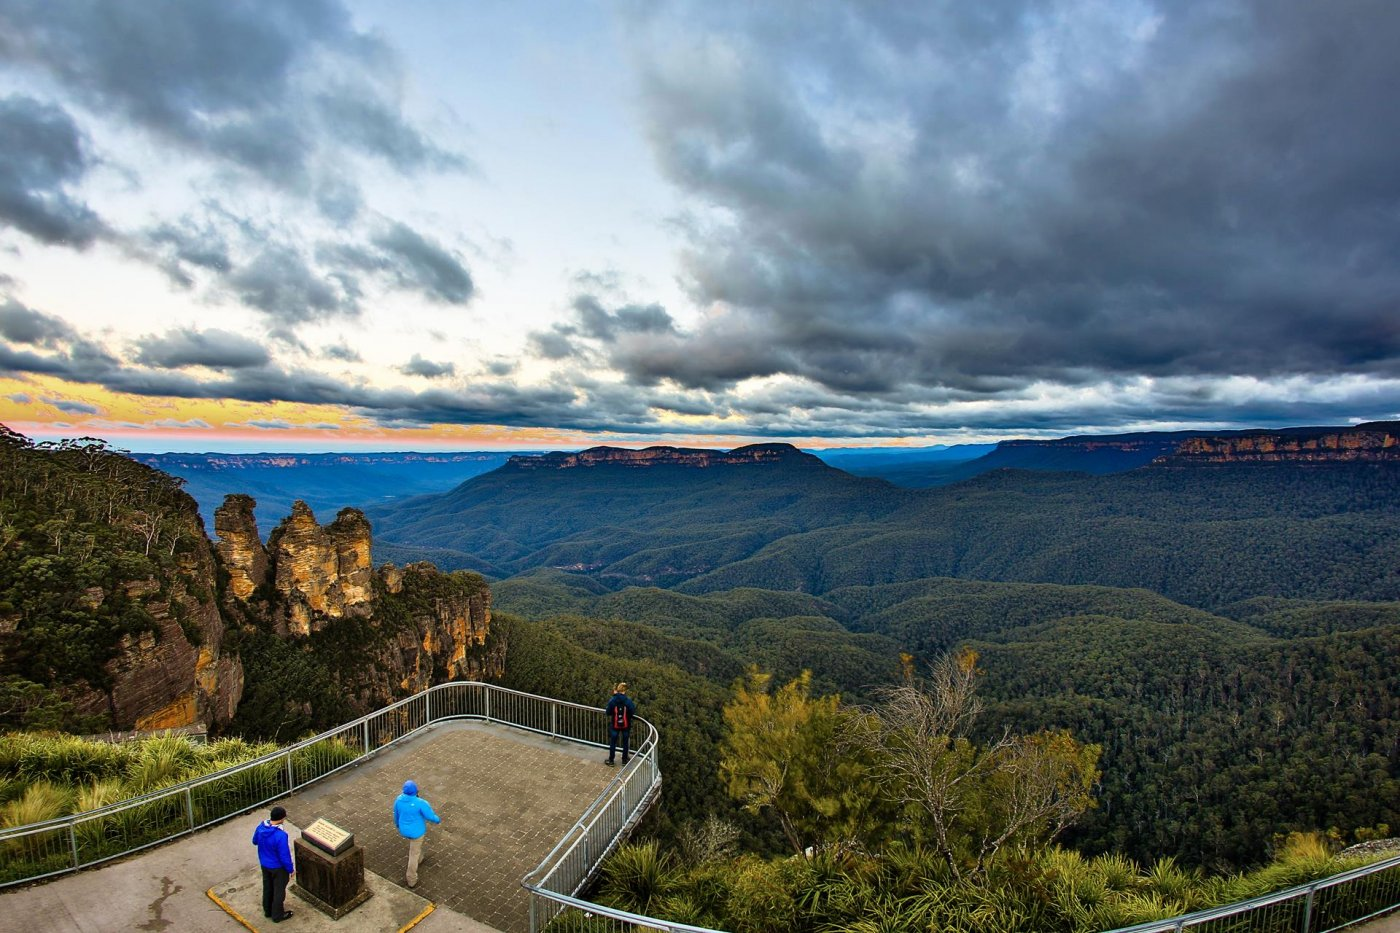 Фото 4676 (Copy).jpg. Австралия, New South Wales, Blue Mountains National Park, Hurley Heights Trail